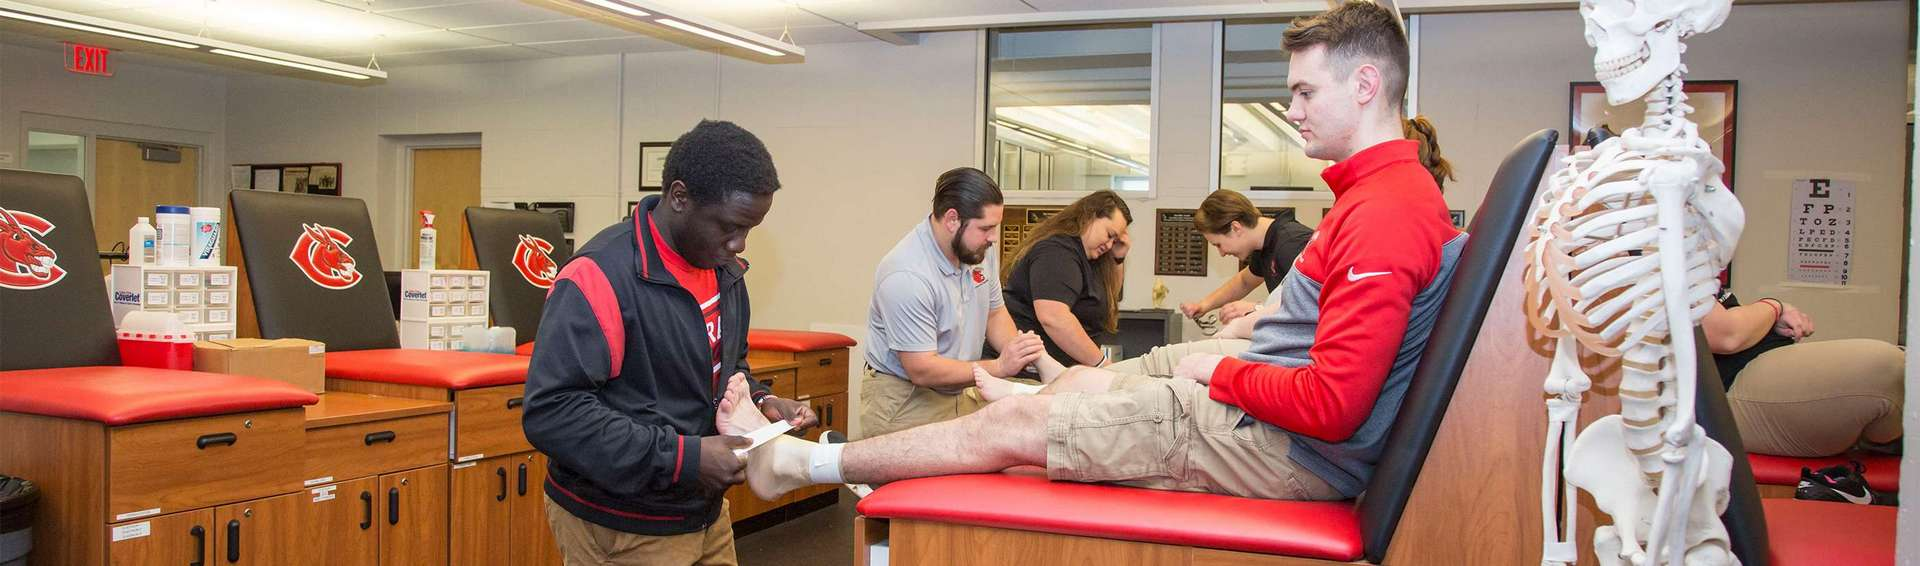 Students in athletic training labs